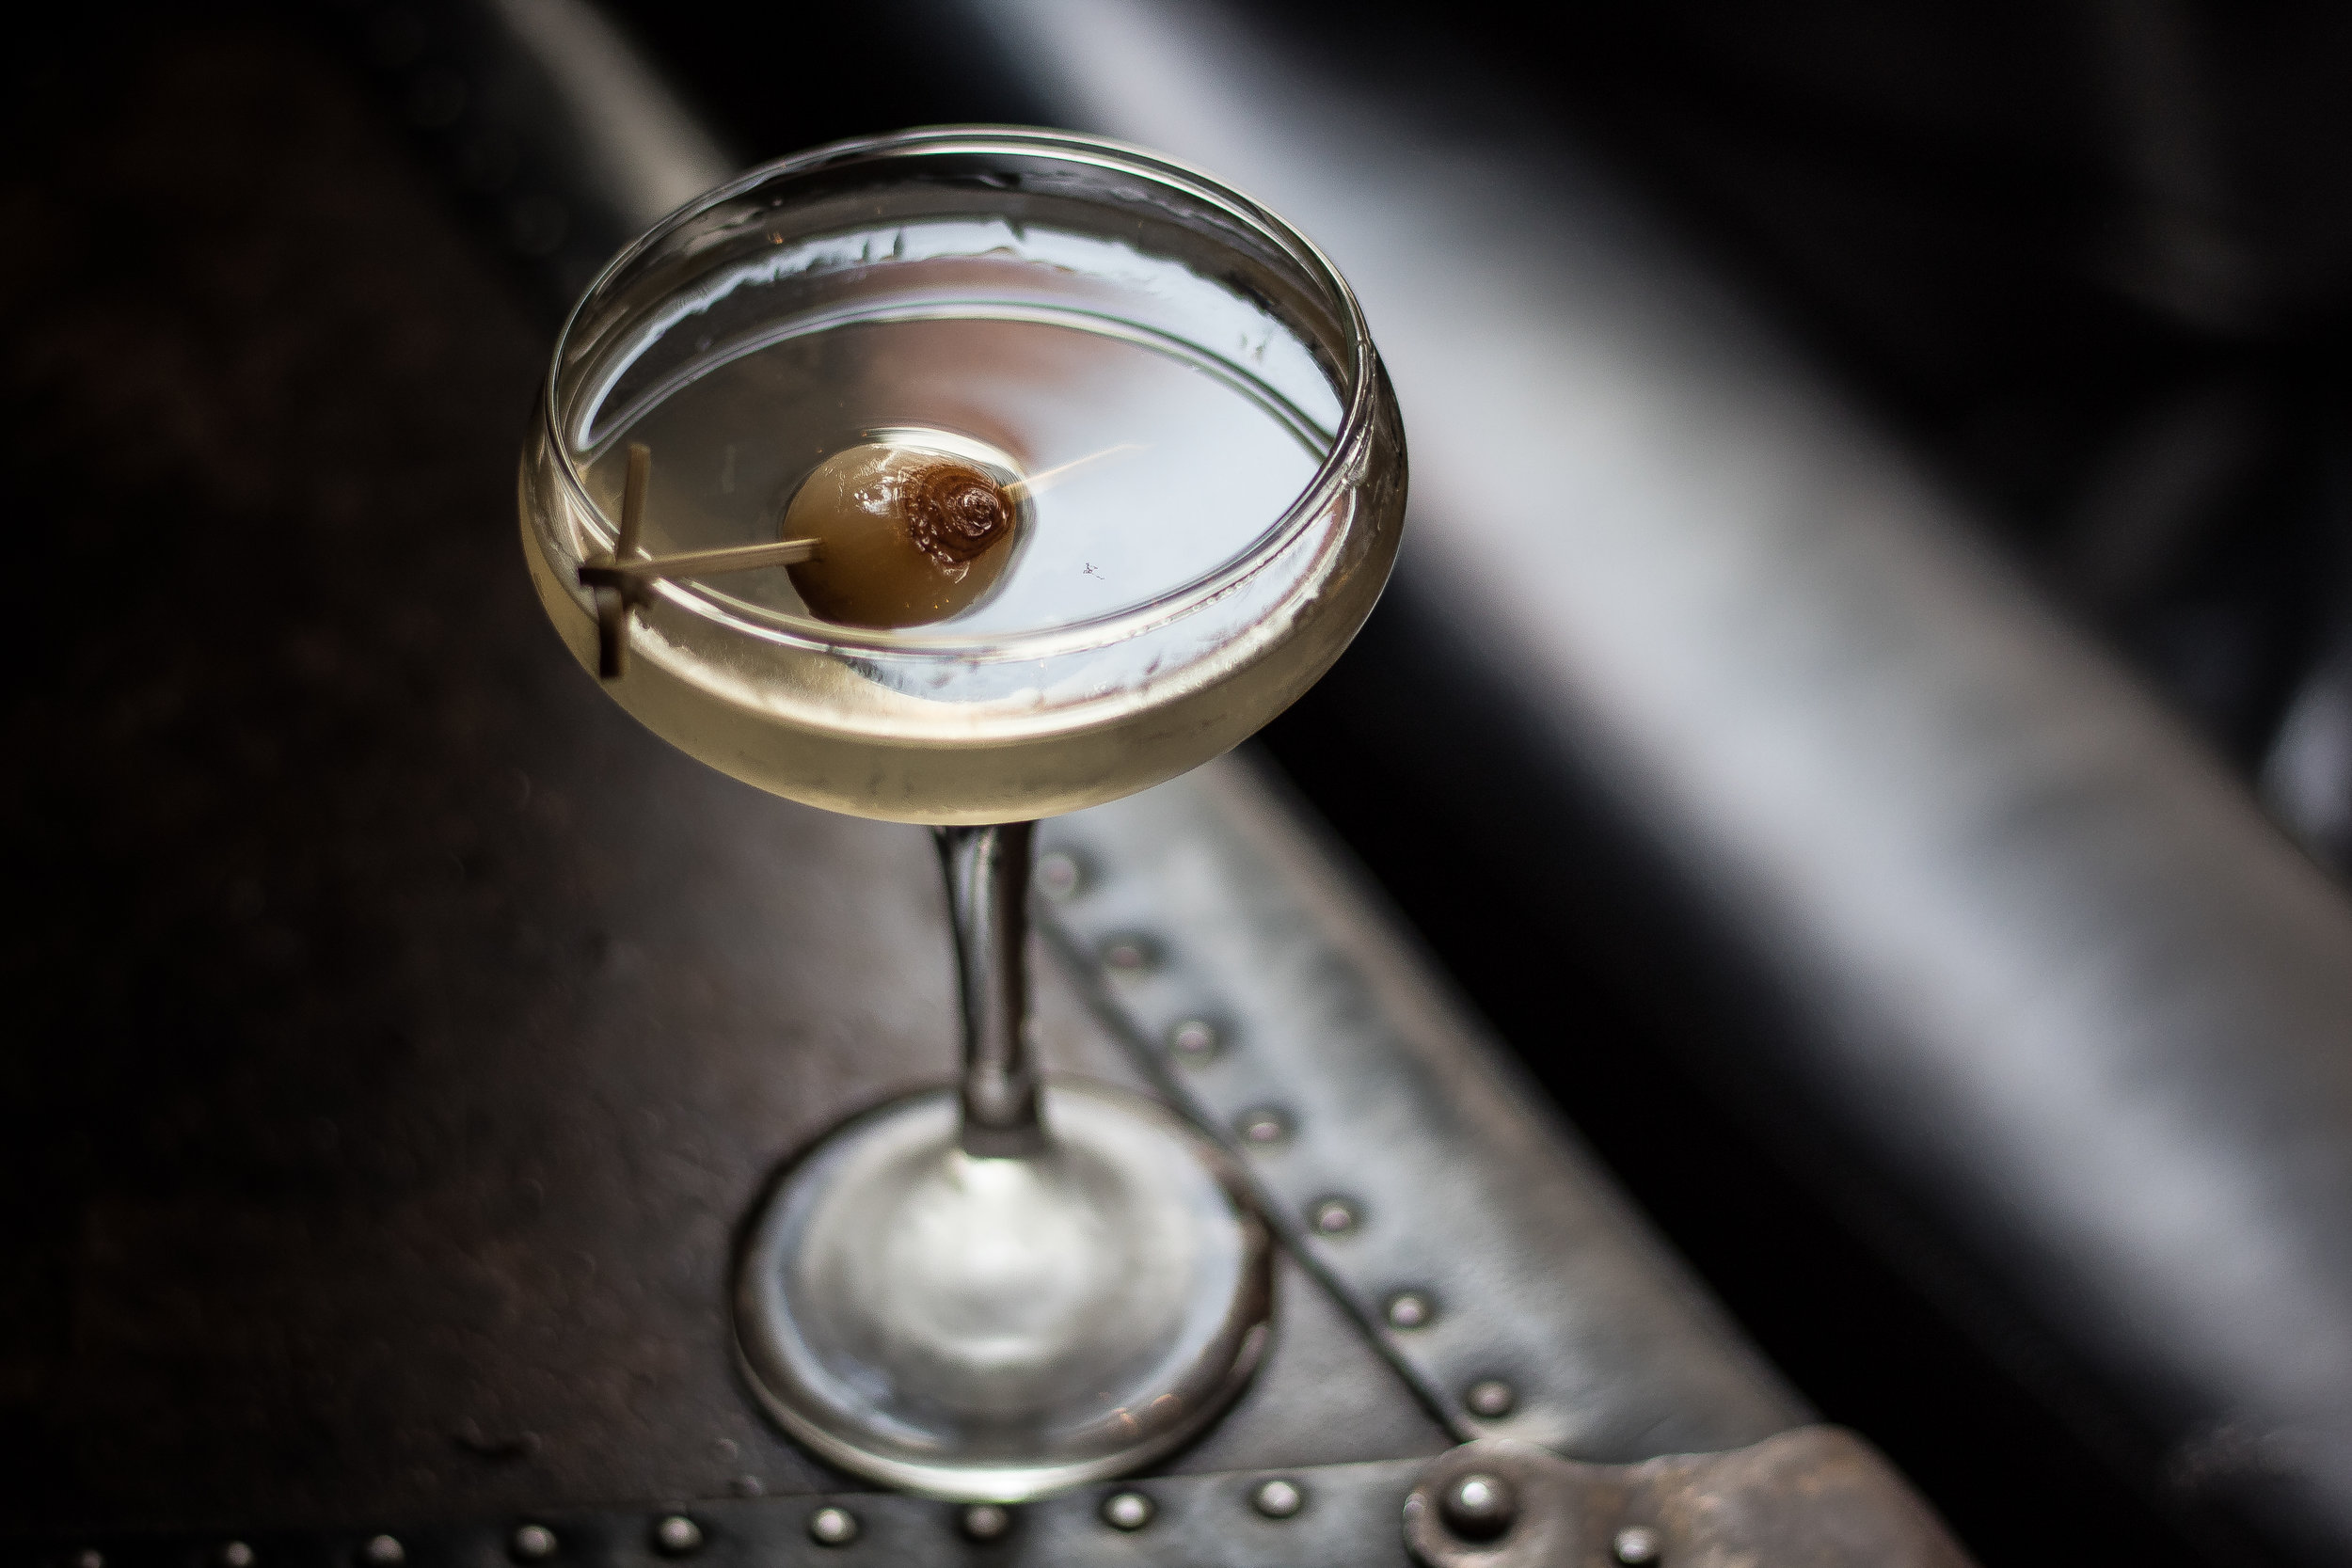 Porchlight's Gibson (Martini's savory cousin)